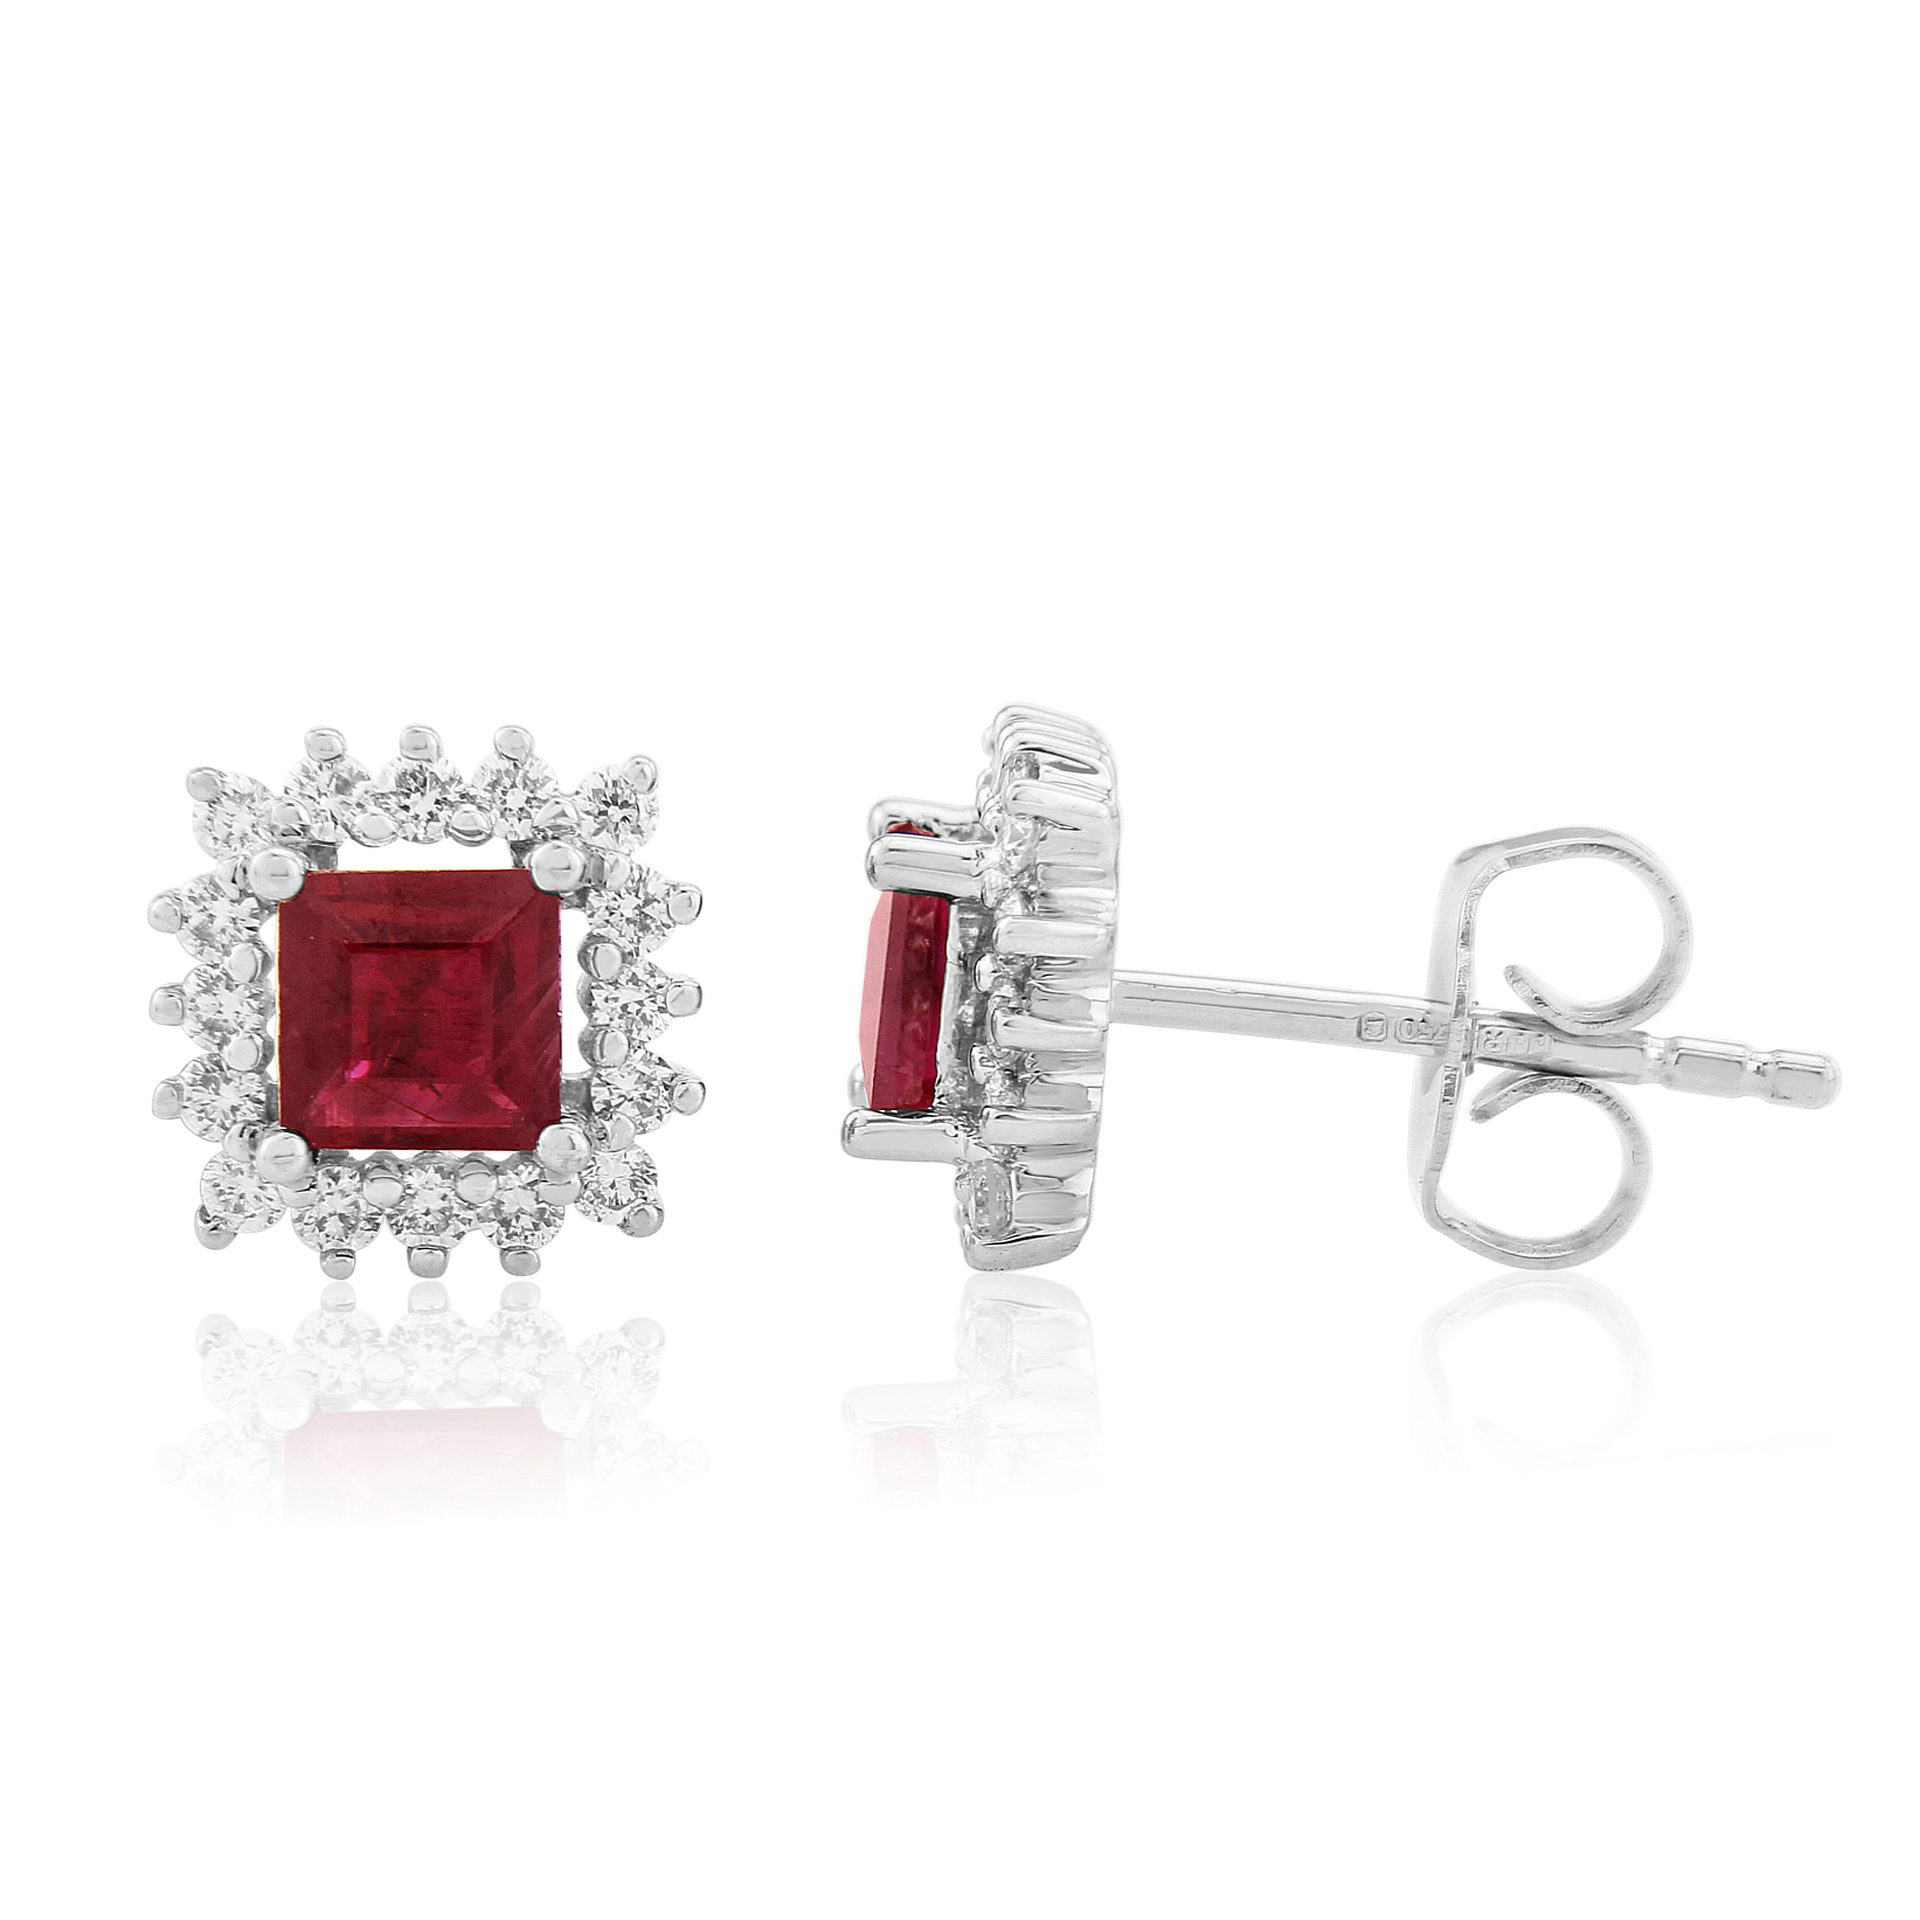 18ct White Gold Square Ruby, Diamond Cluster Earring